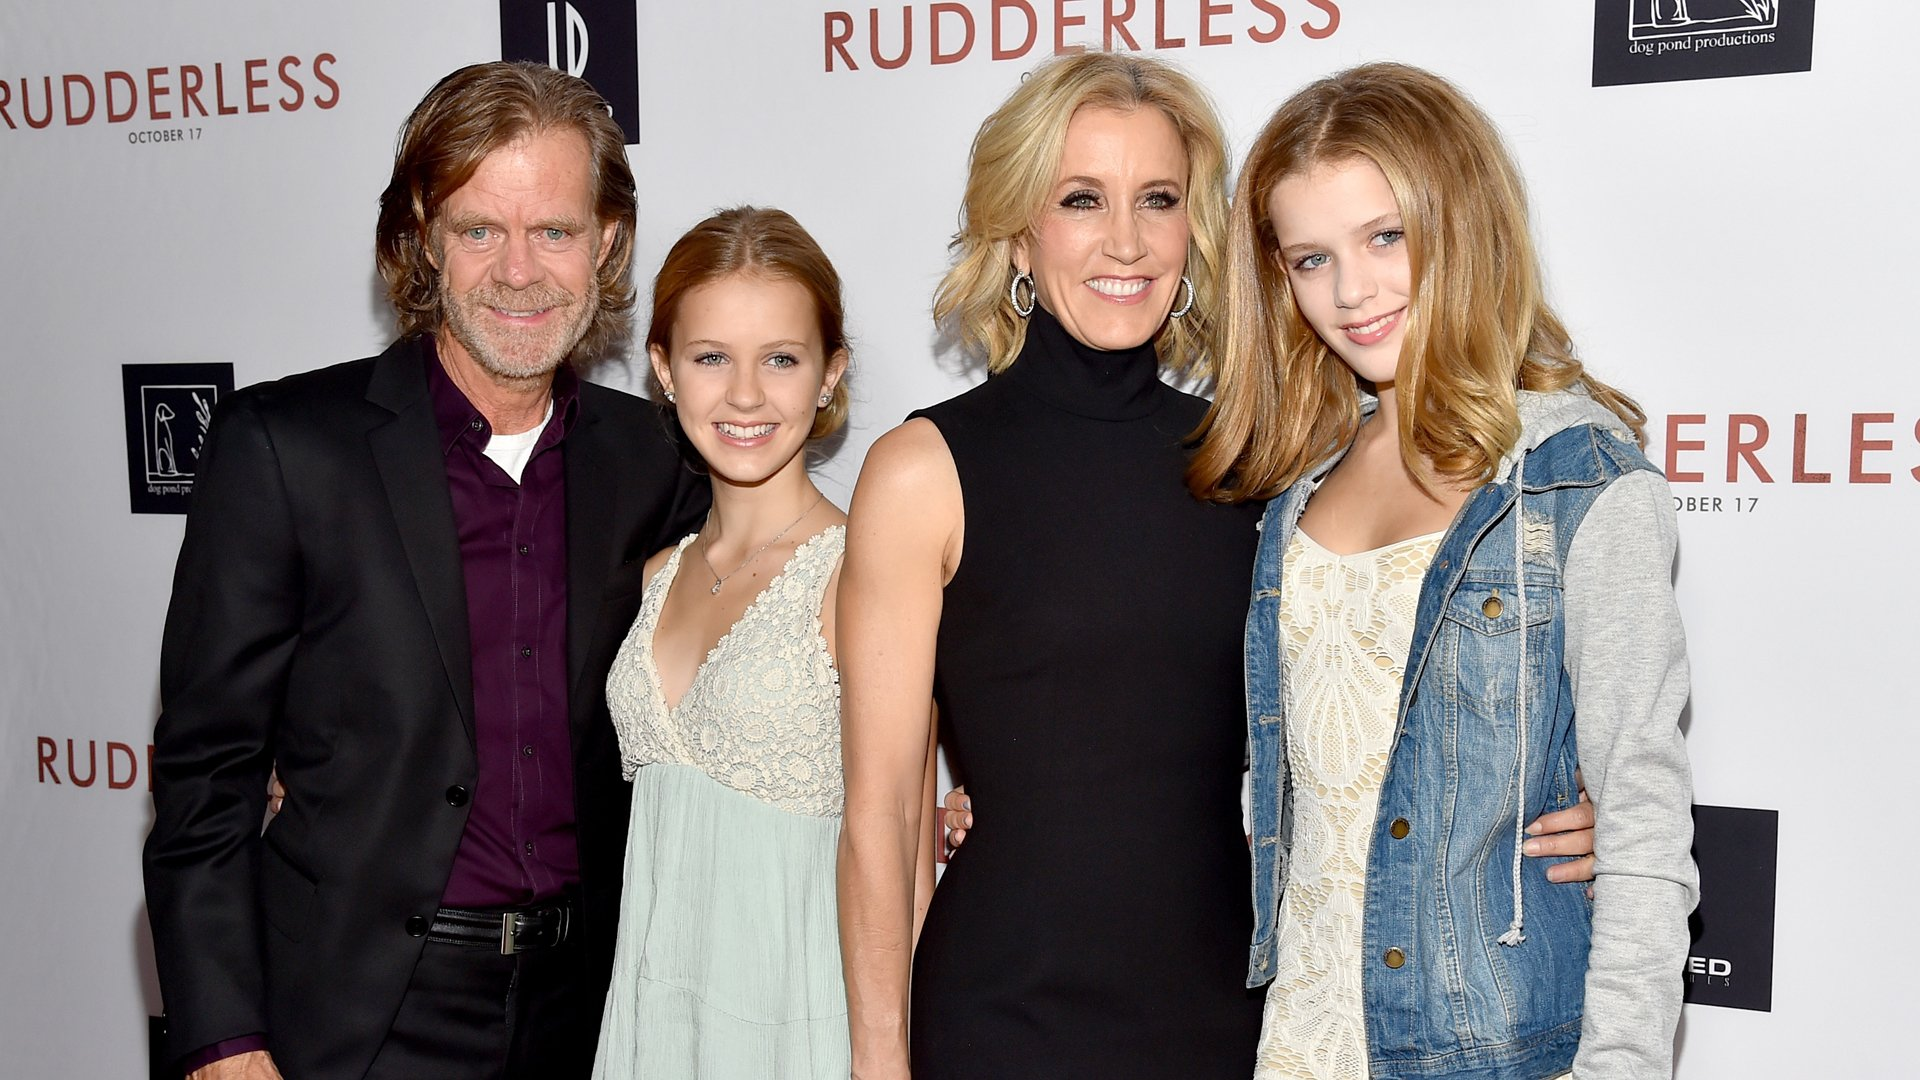 "From left: William H. Macy, Grace Macy, Felicity Huffman and Sophia Macy attend the screening of ""Rudderless"" at the Vista Theatre in Los Angeles on Oct. 7, 2014. (Credit: Alberto E. Rodriguez / Getty Images)"